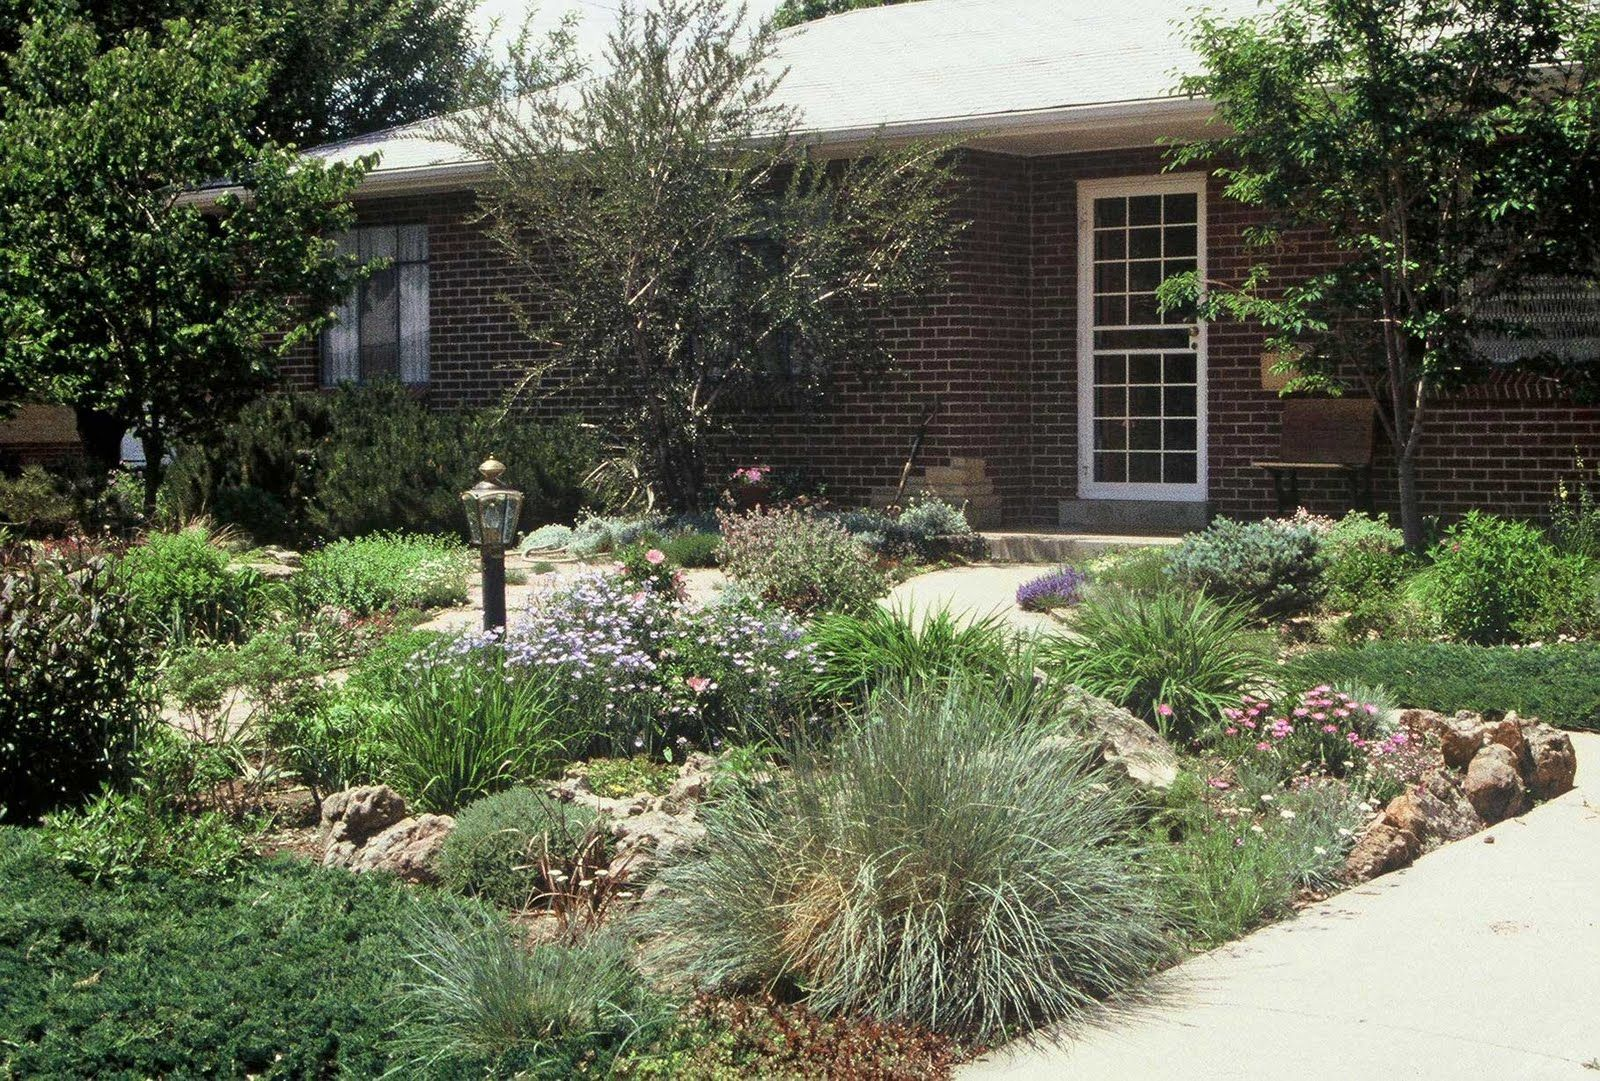 Simple landscaping ideas for front yards backyard ideas for Simple front landscape ideas